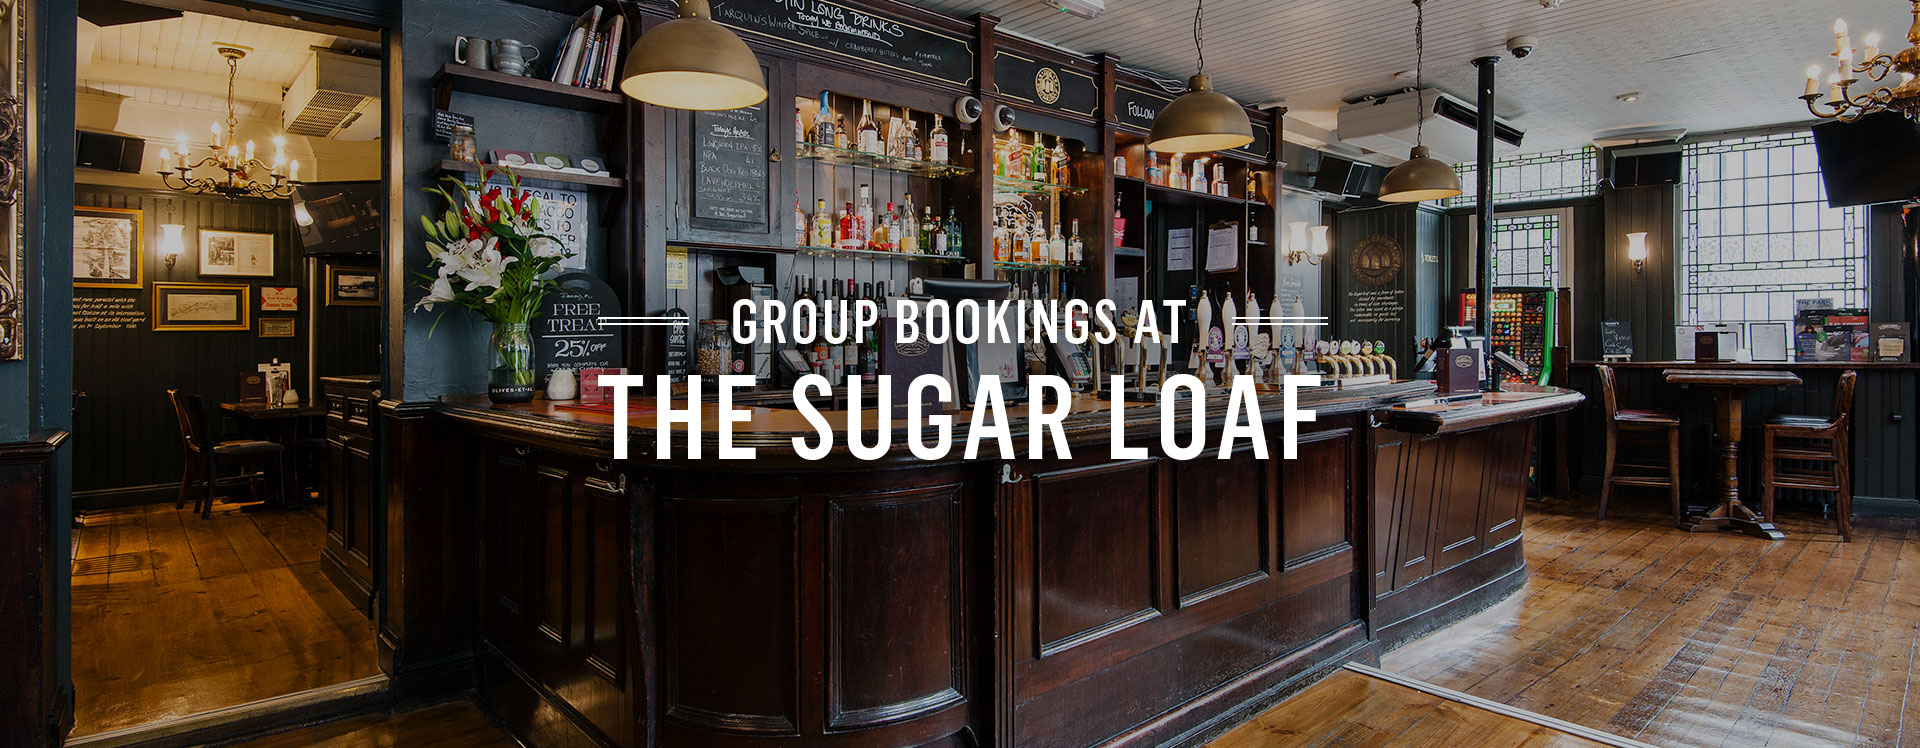 Group Bookings at The Sugar Loaf